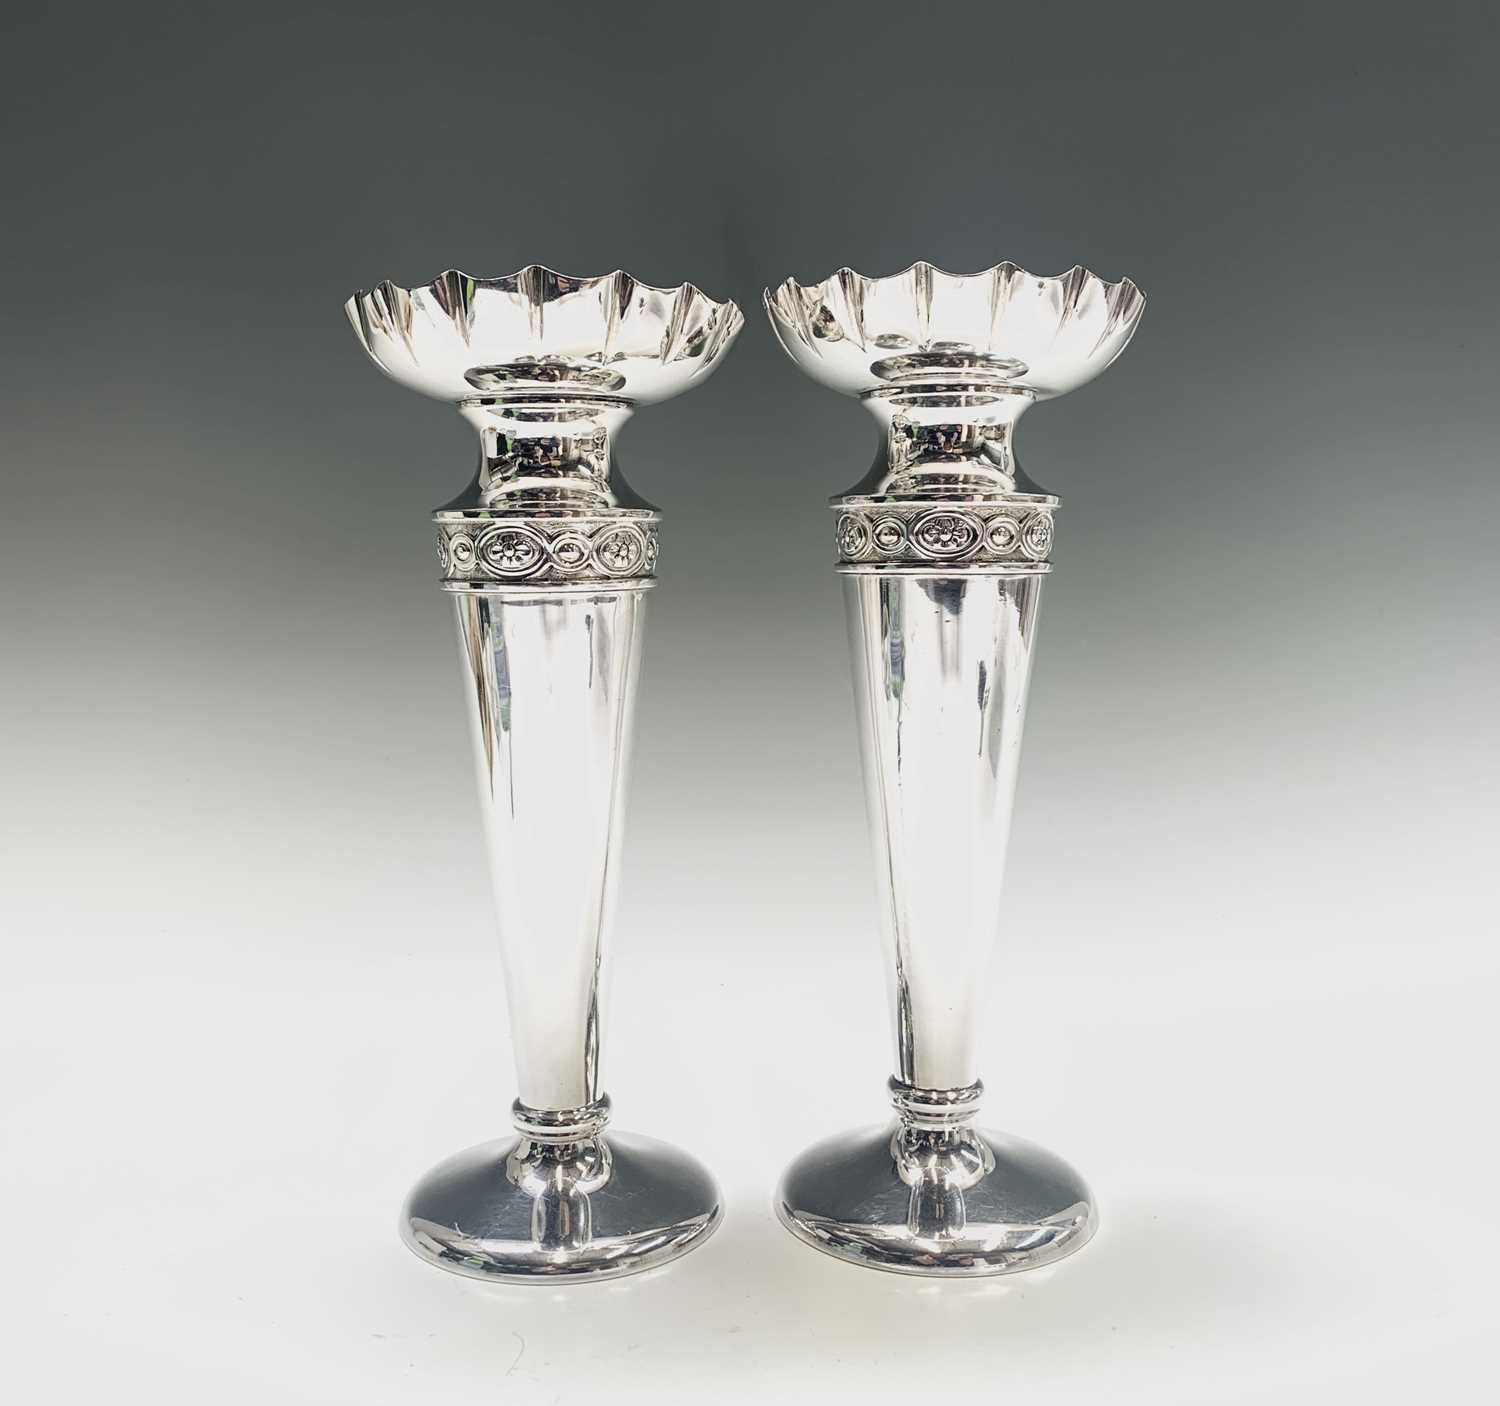 Lot 1010 - A pair of silver vases, the necks with chased...